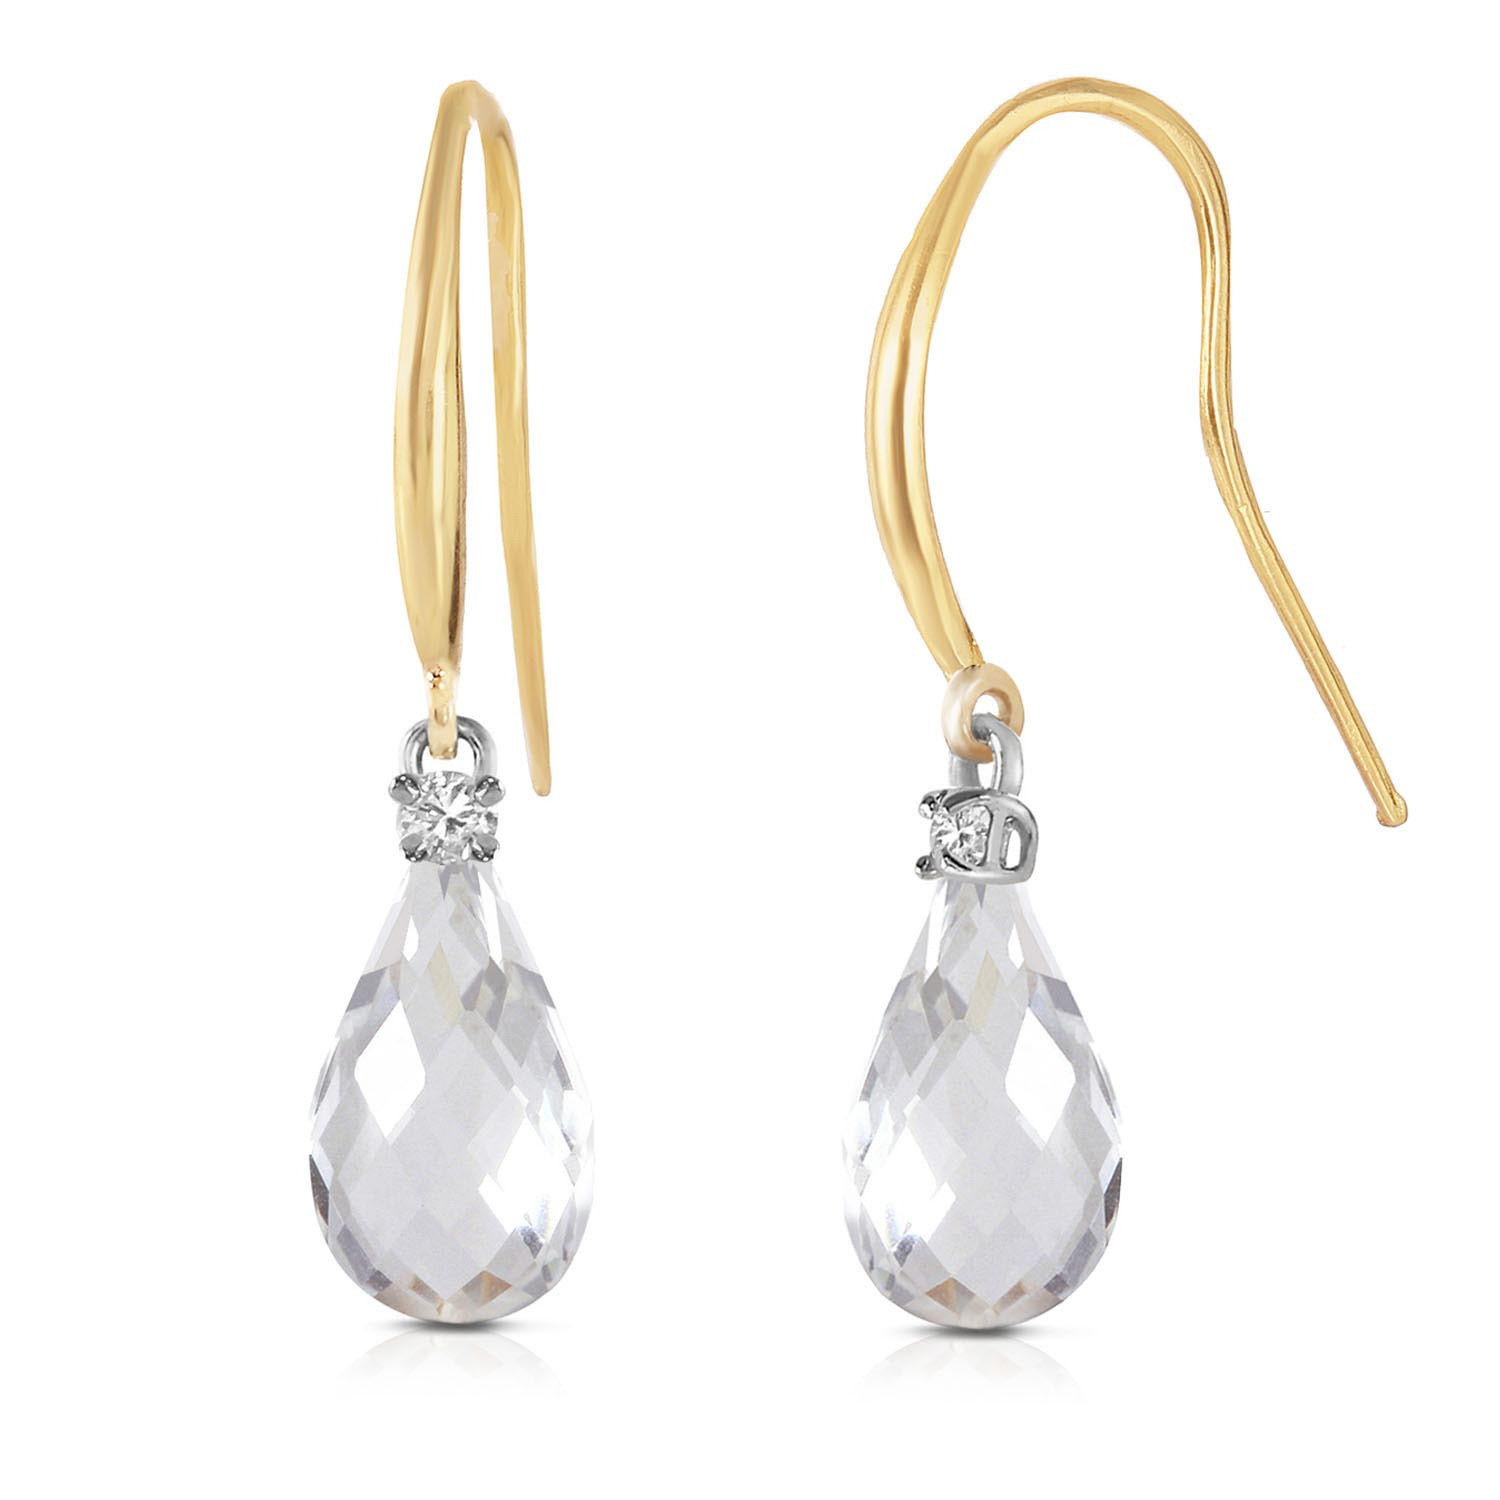 White Topaz and Diamond Drop Earrings 4.5ctw in 9ct Gold